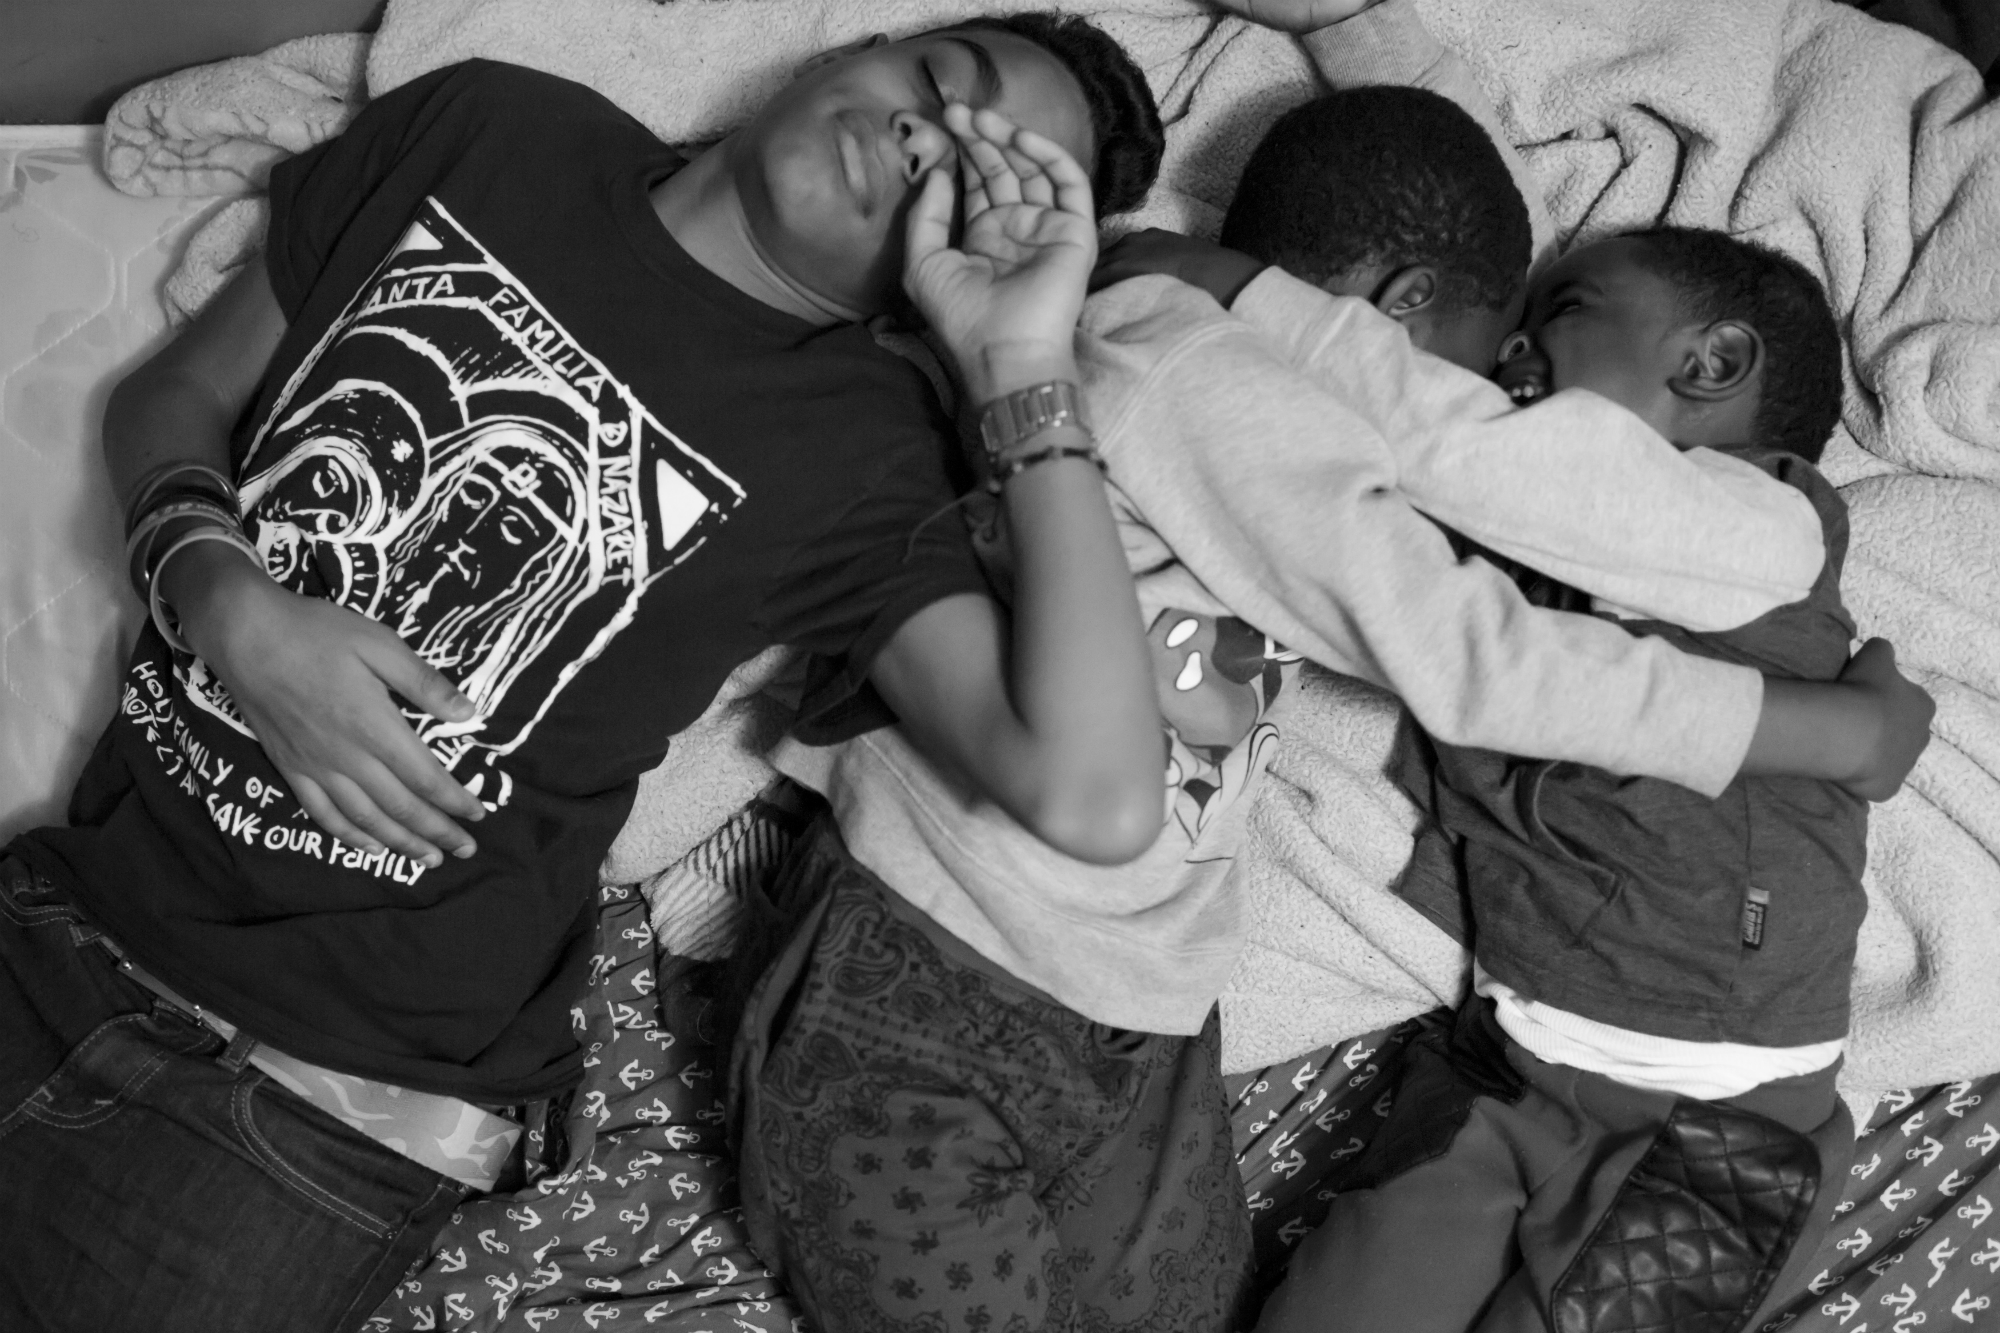 Chavi Leon rests with his two cousins, Jeremy and Jerry Mateo, at their relatives', the Demoyas, house in the Bronx on Feb. 6, 2016, New York City. The Leons are from the Dominican Republic, but keep strong family connections in New York. (Photo by Sarah Blesener/GroundTruth/Alexia Foundation)